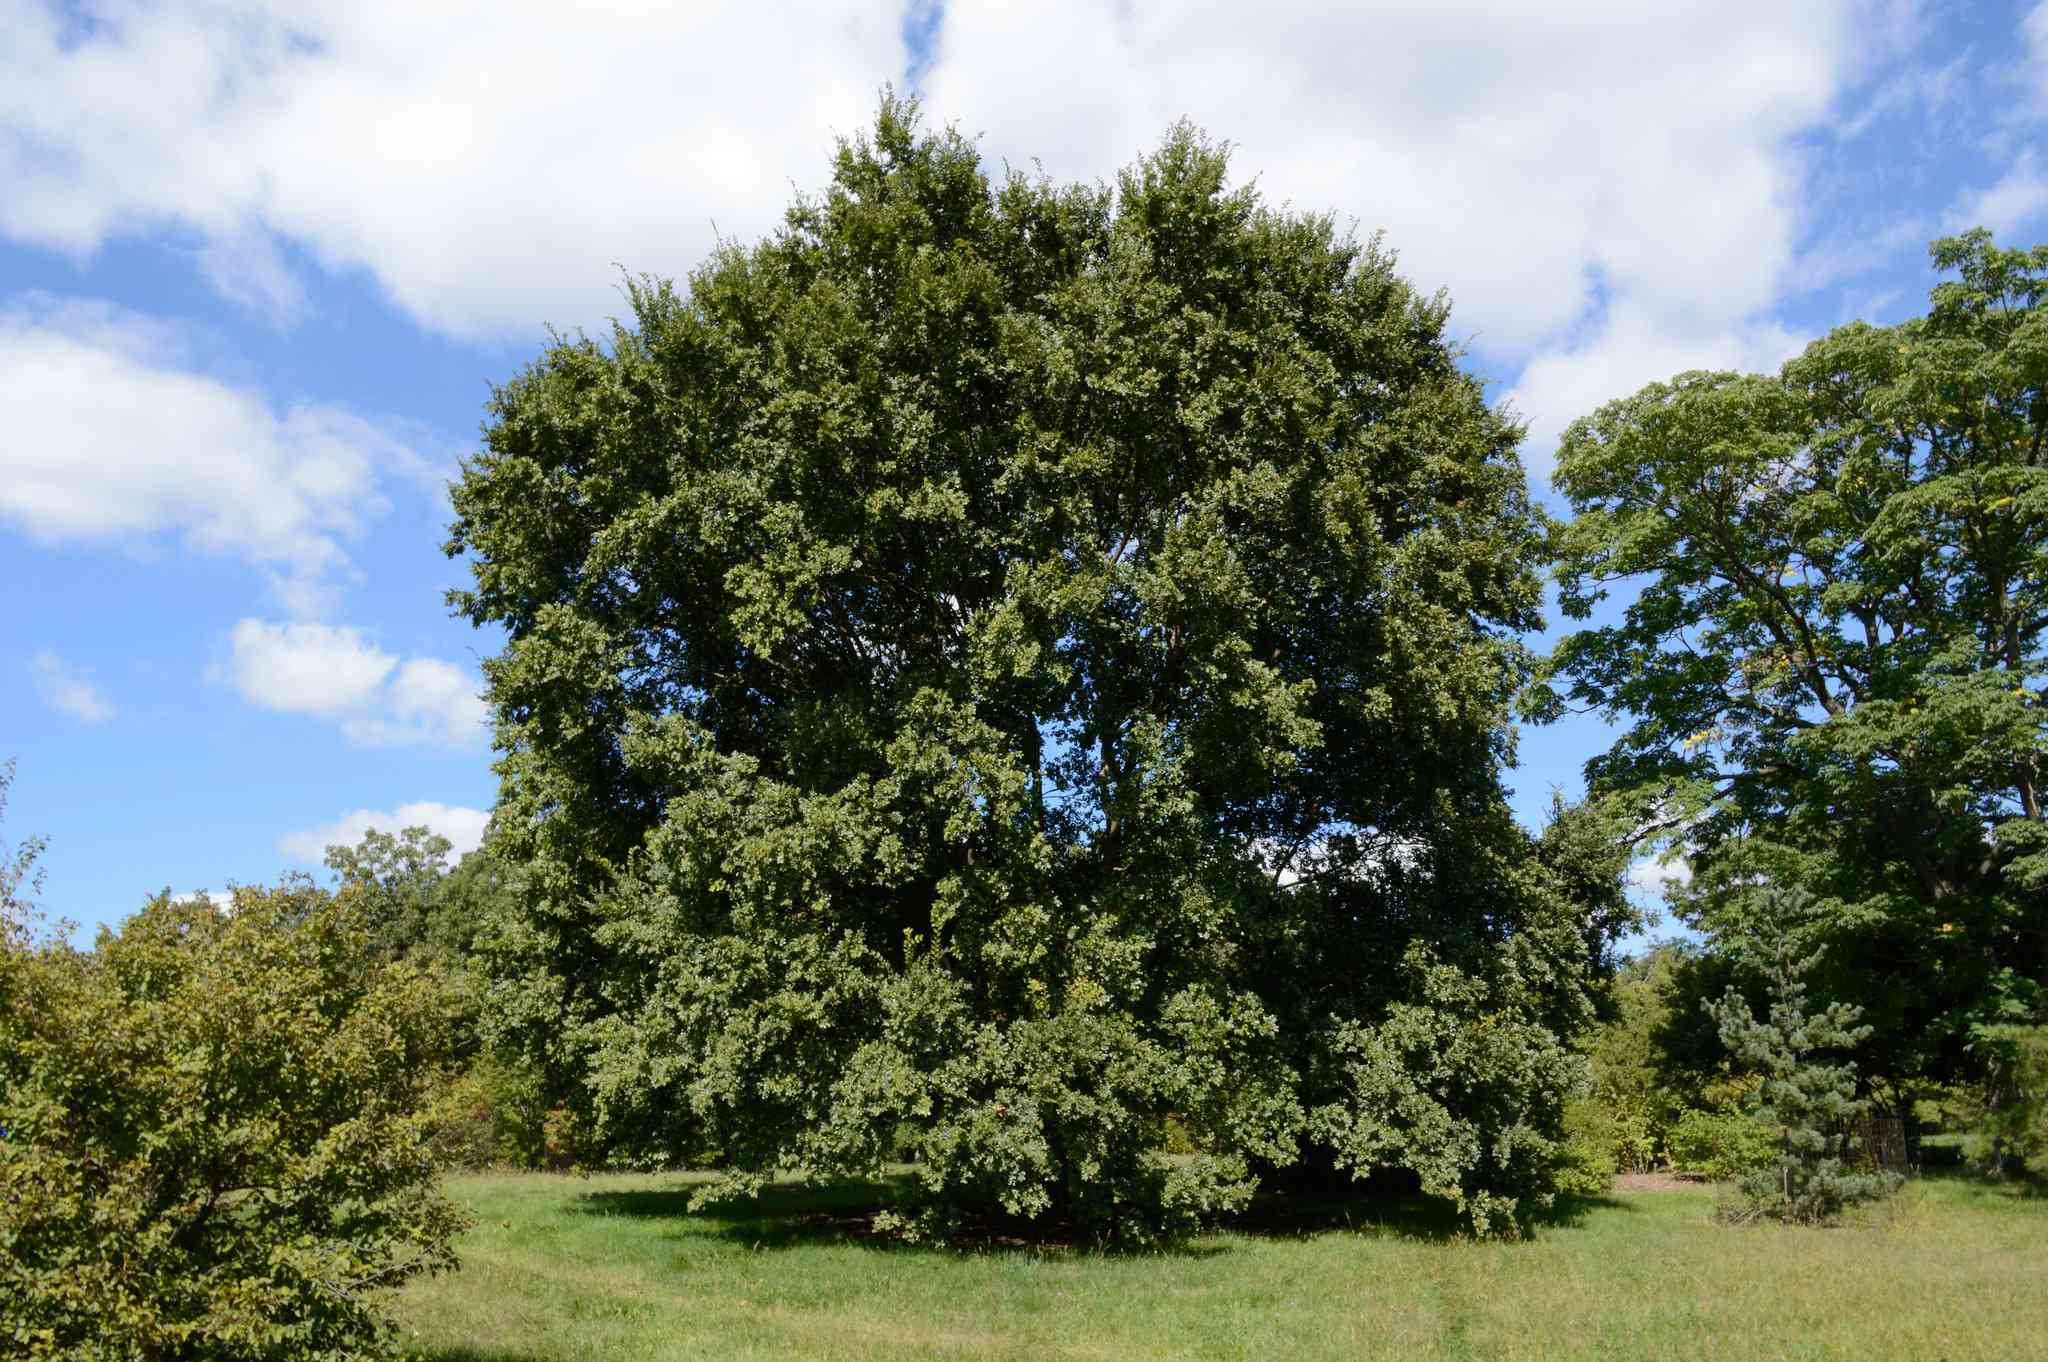 A Chinese Elm tree in a field against blue sky.